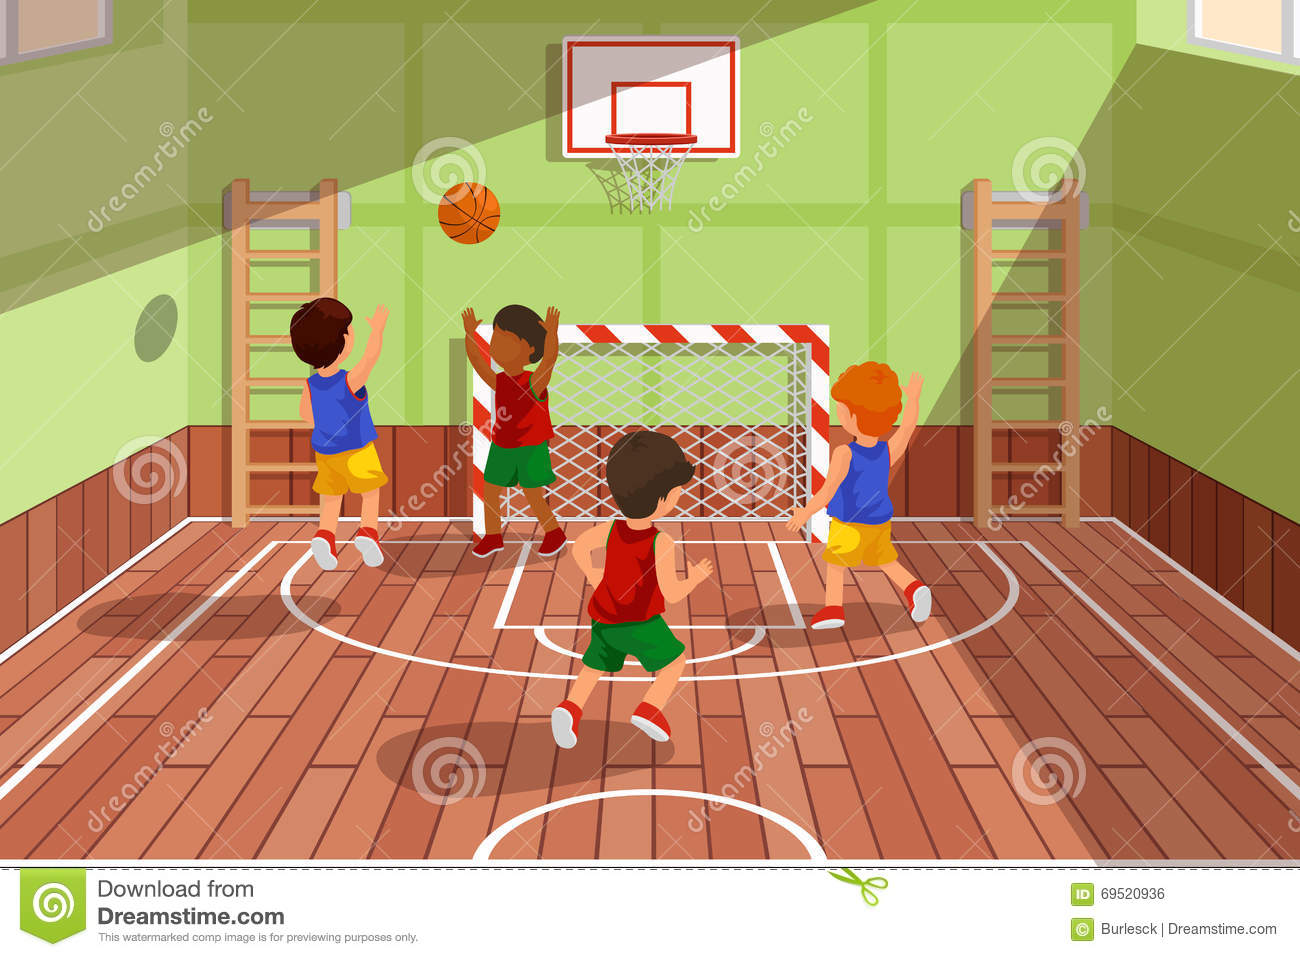 Basketball team playing game kids are playing vector illustration